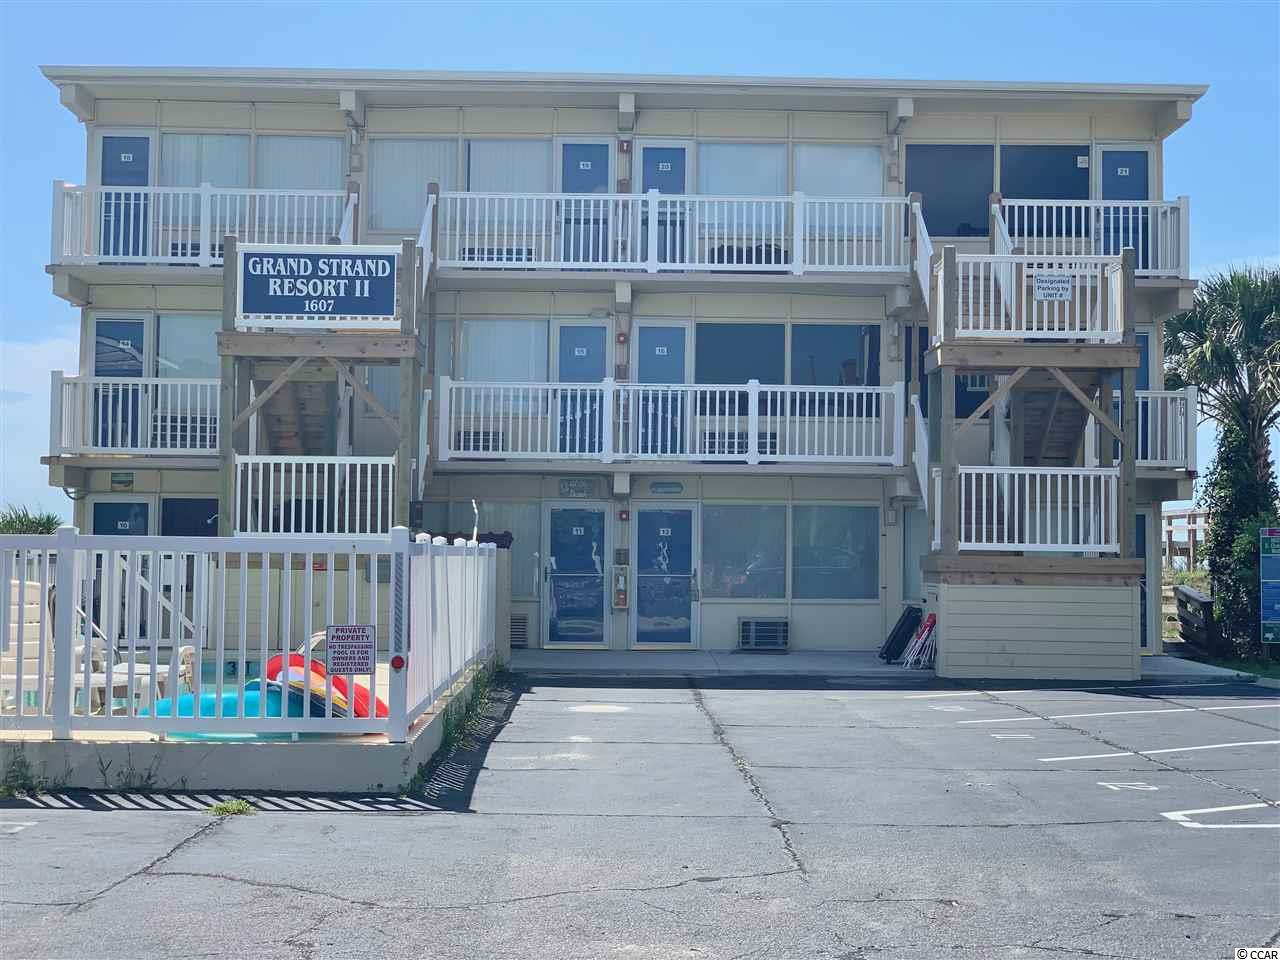 Looking for a deal on the oceanfront? You must see this direct oceanfront end unit condo located in the crescent beach section of North Myrtle Beach. Location, Location, Location! Close to main street, barefoot landing, restaurants, shopping, and all the beach has to offer. Perfect opportunity for an investor or weekend getaway, schedule your showing today!